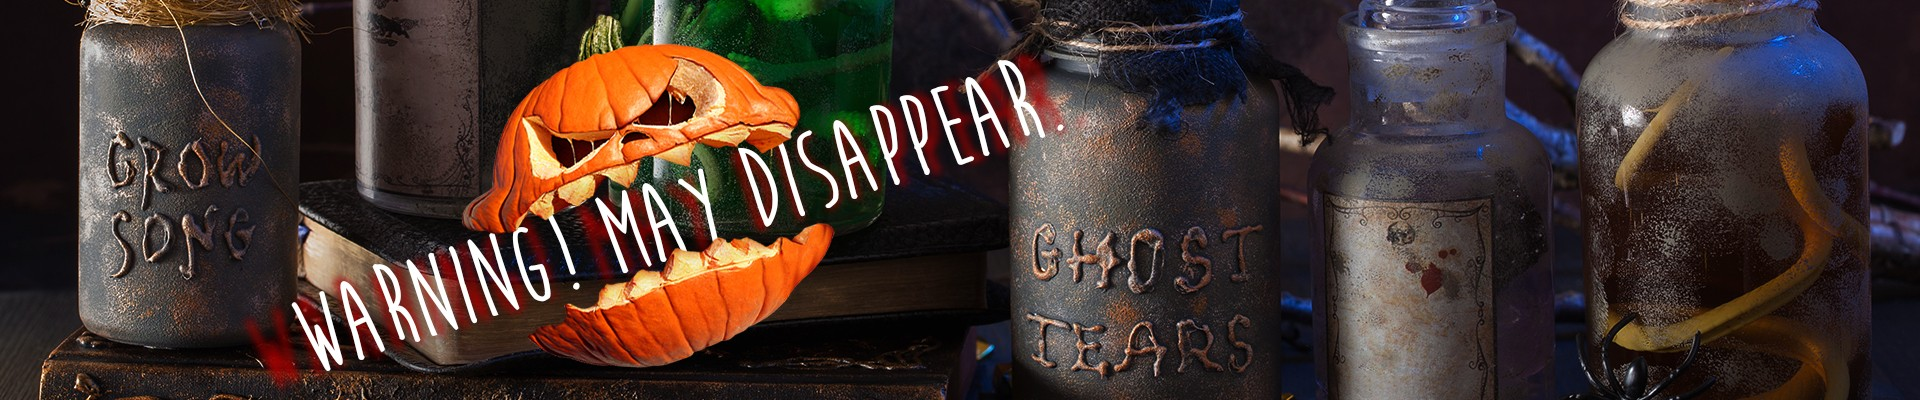 Warning! May disappear. Halloween potion drinks.